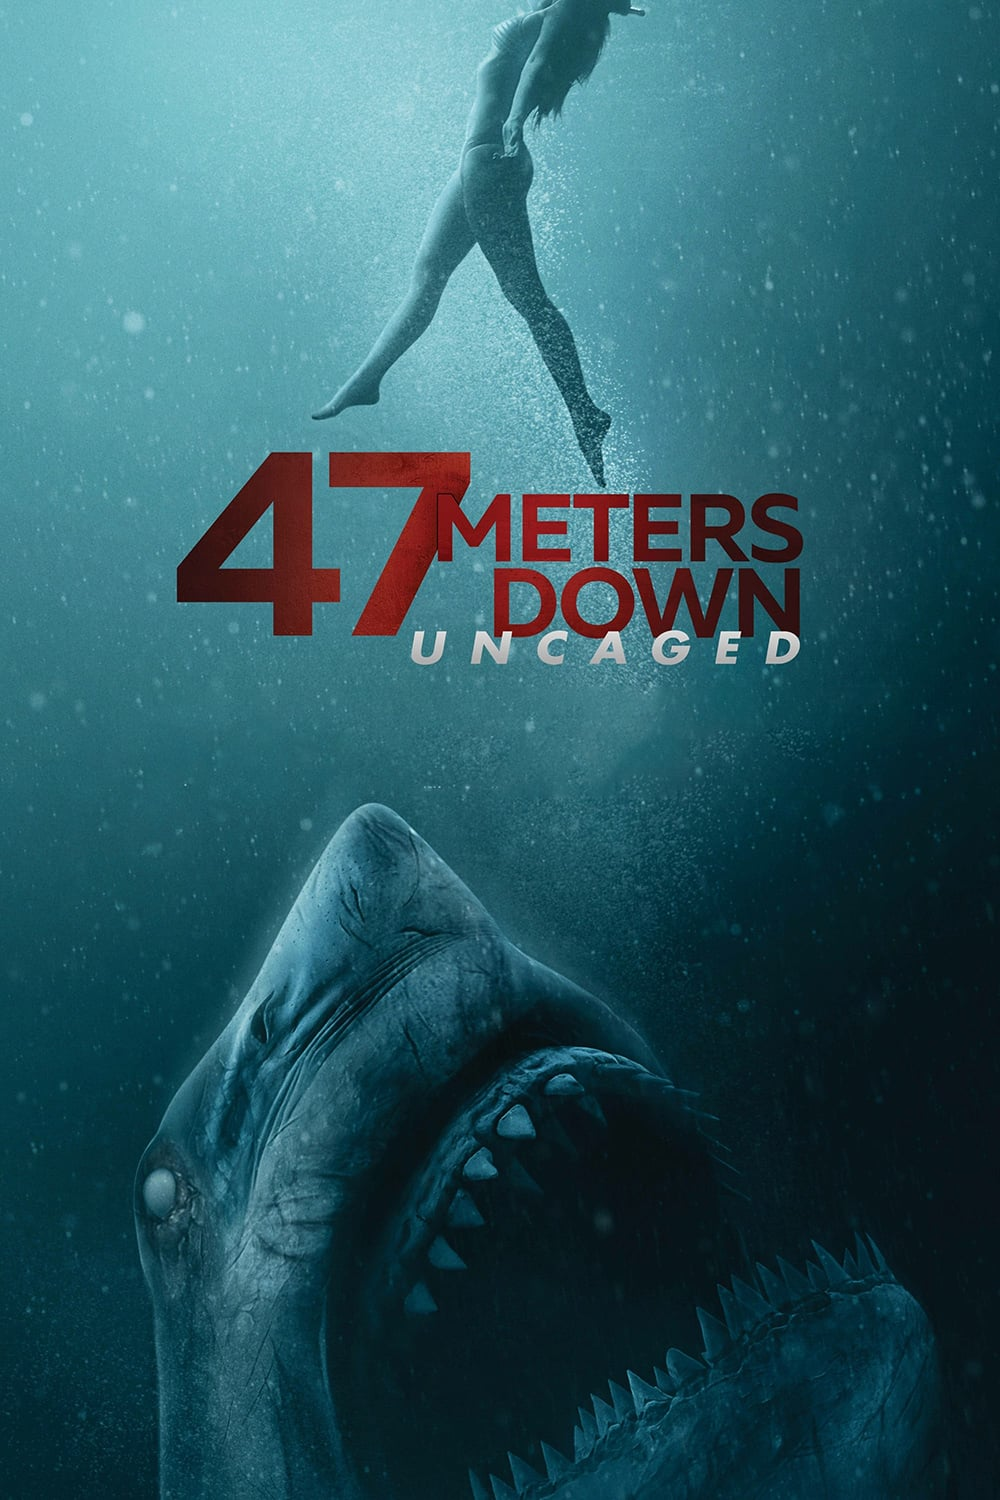 download or watch 47 Meters Down: Uncaged full movie online free Openload